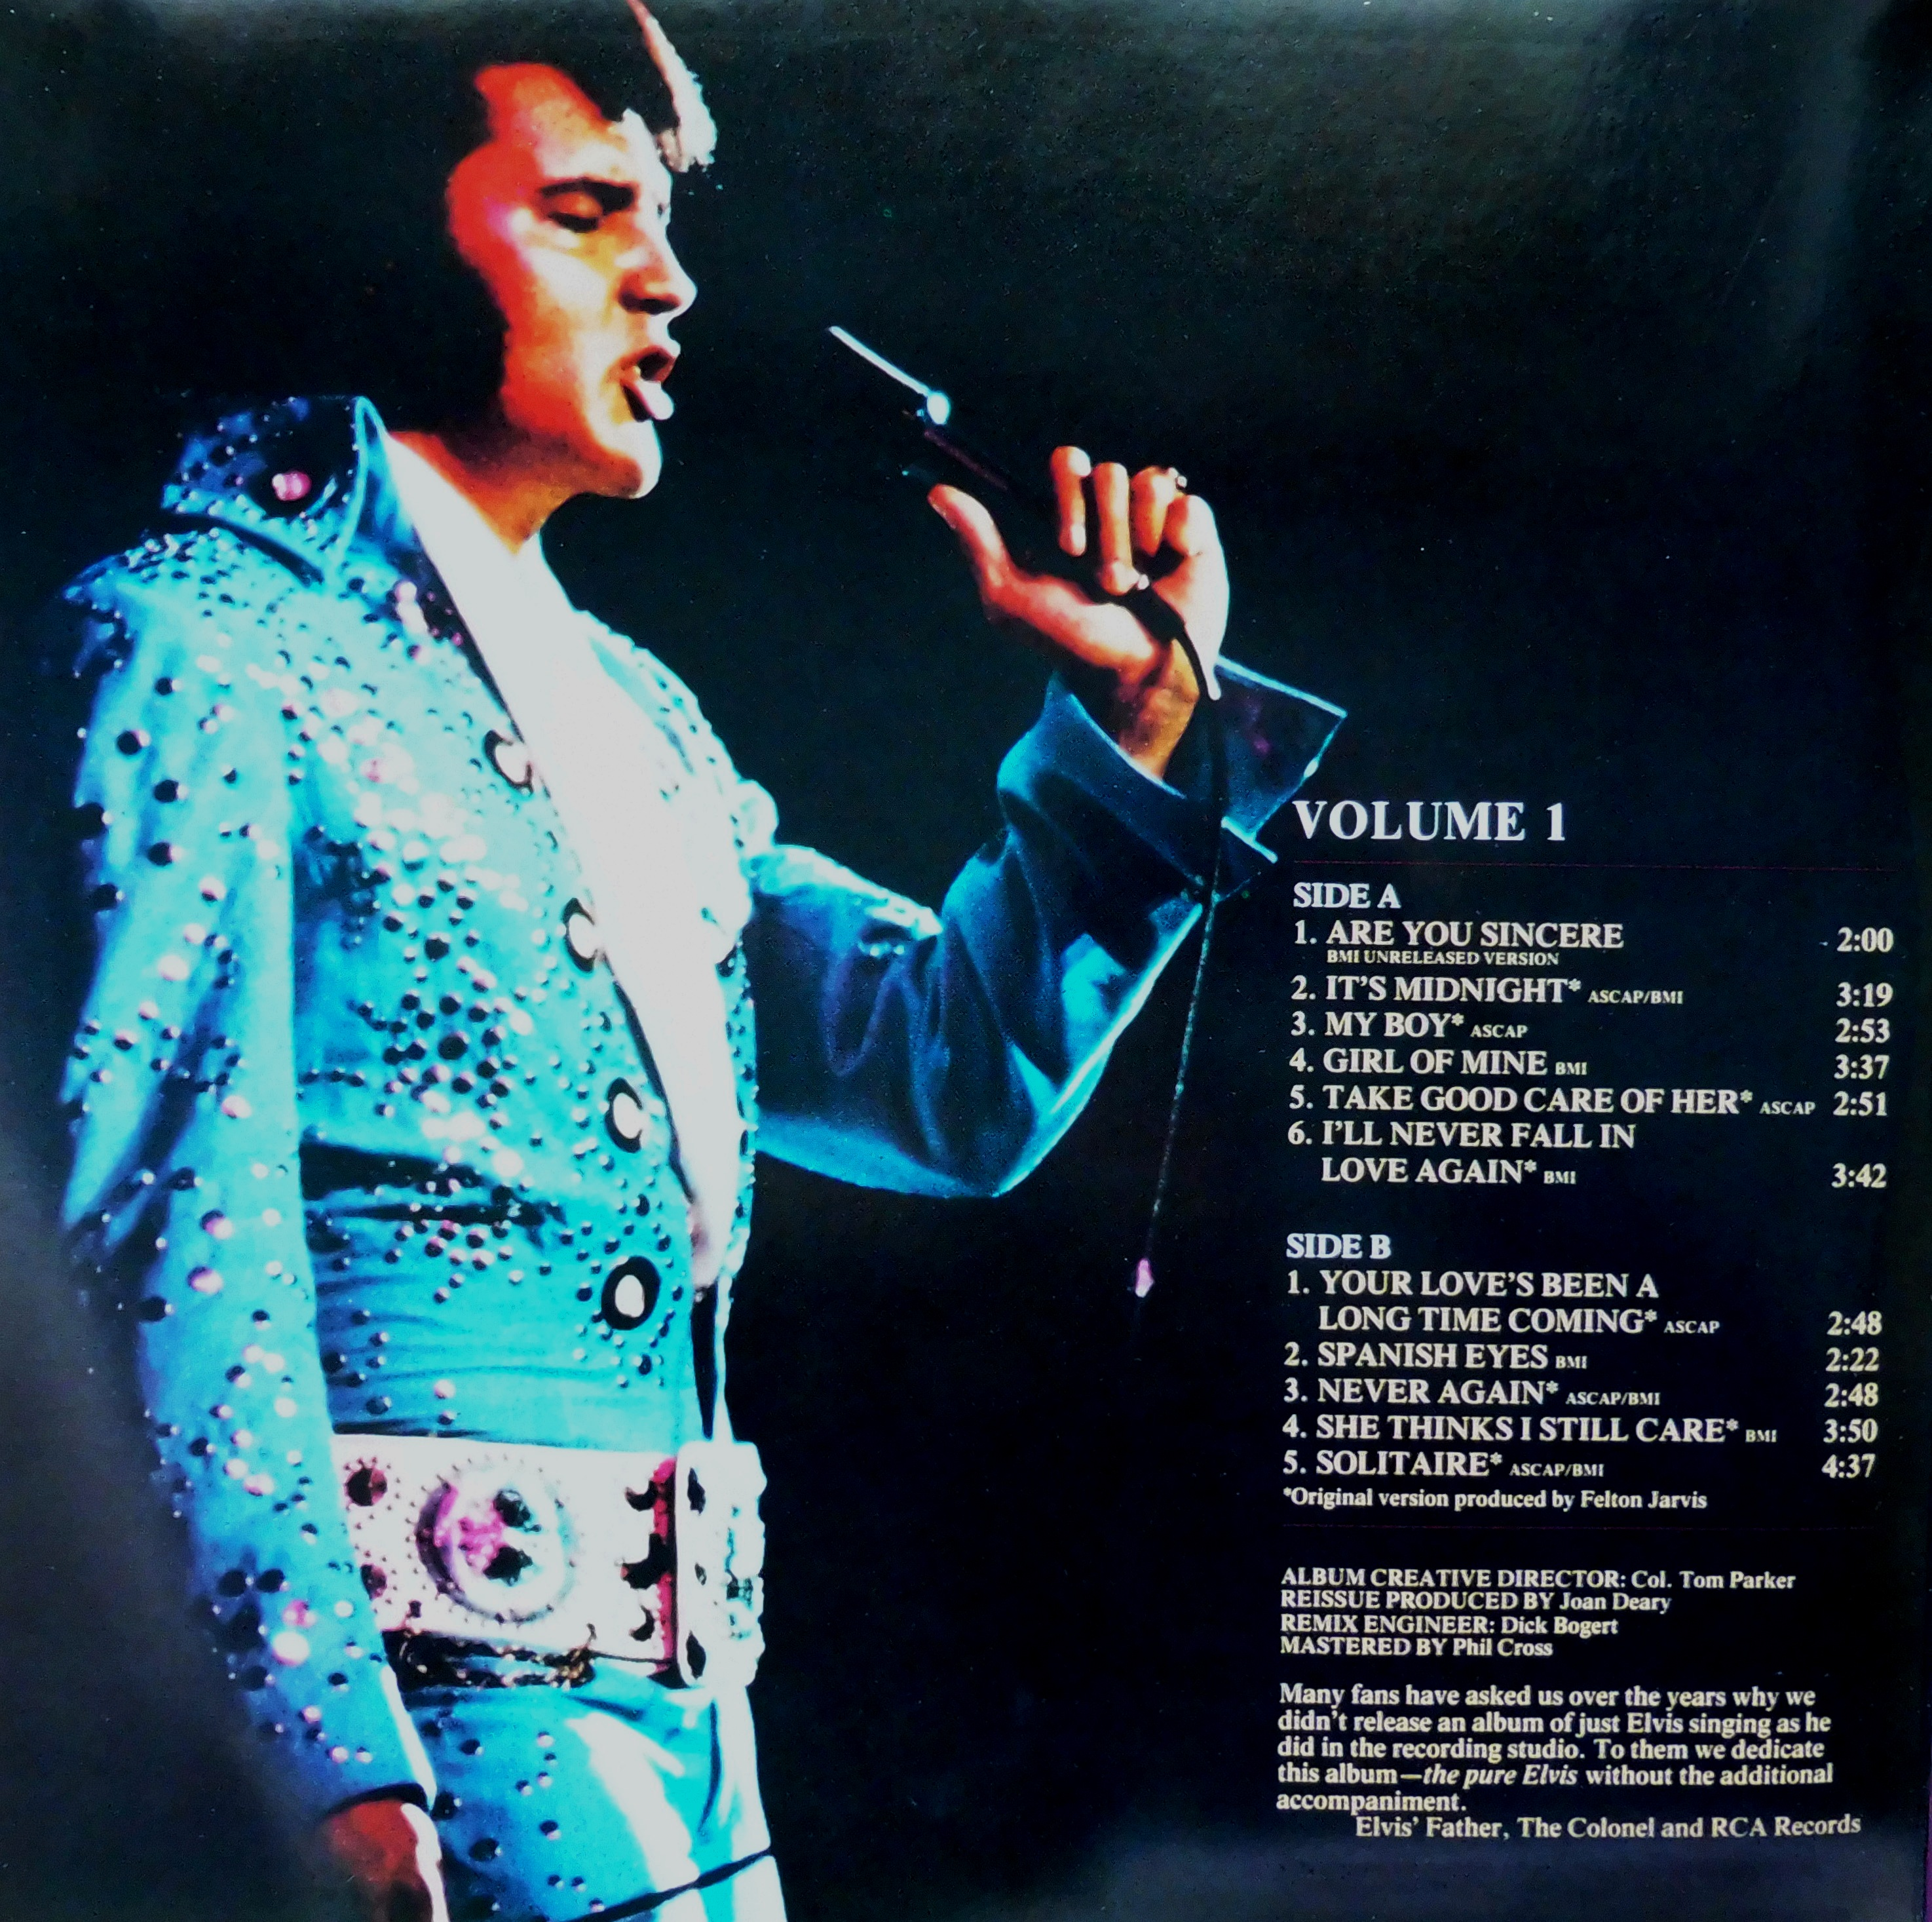 OUR MEMORIES OF ELVIS - Volume 1 & 2 Omoevol1und2nlinnenli6zj7r